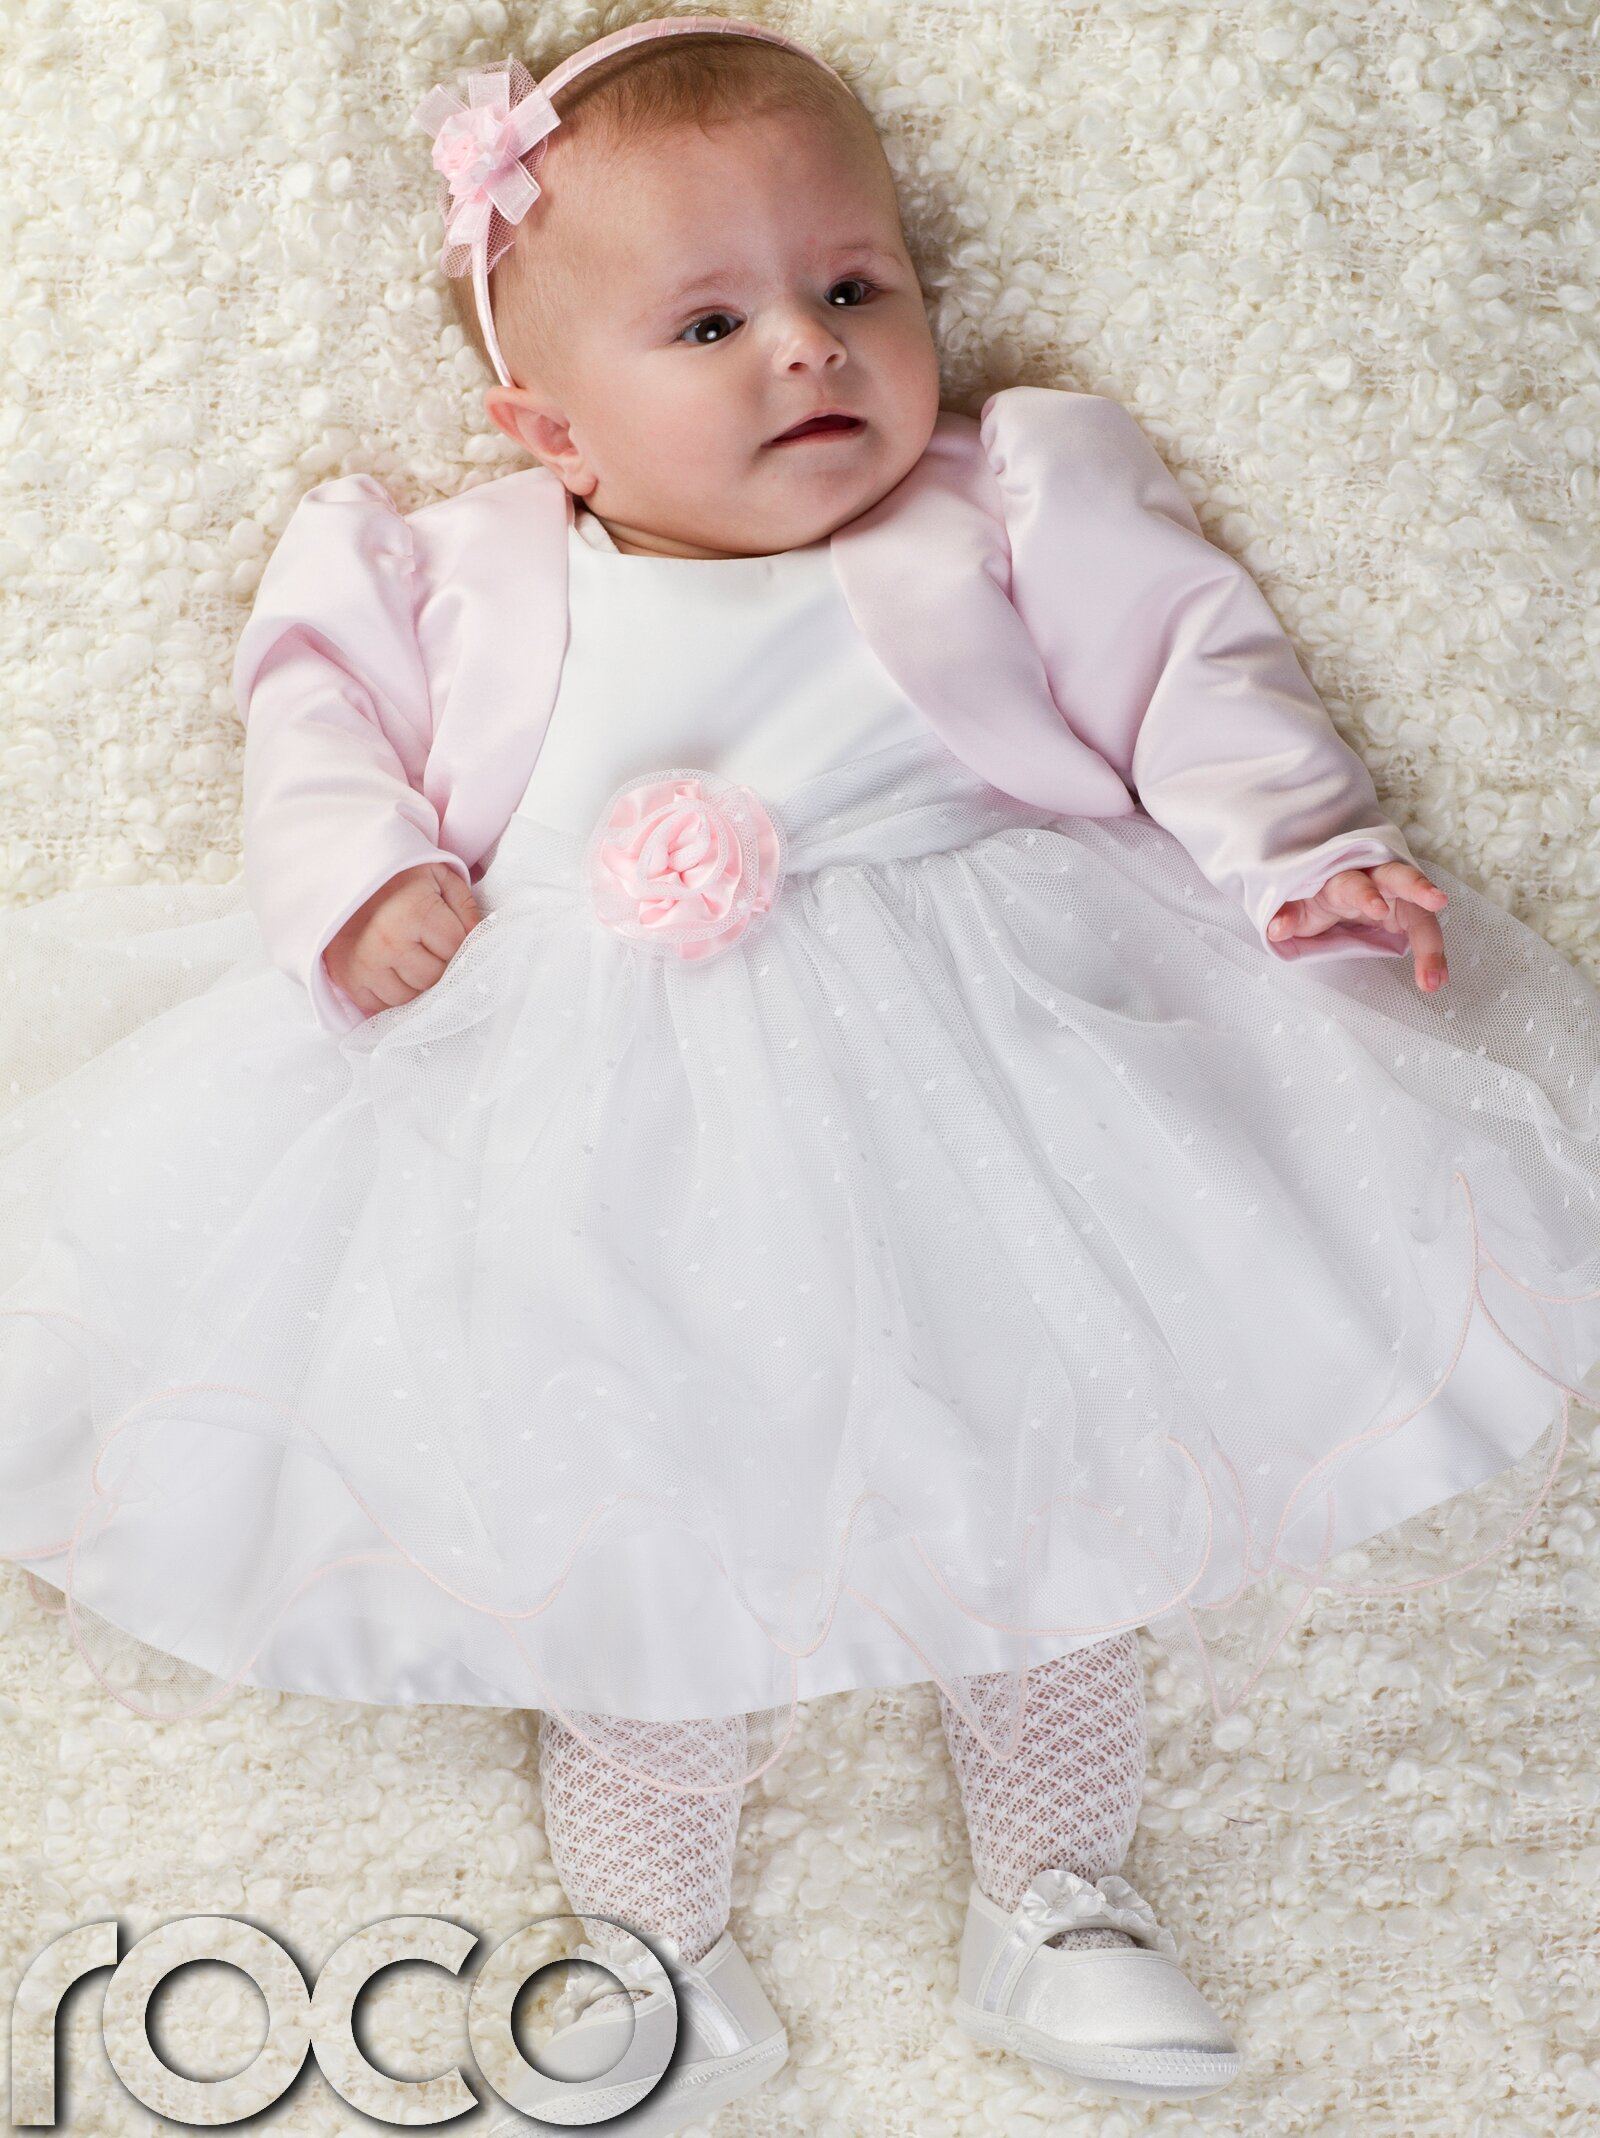 Wedding dresses for baby girl: Pictures ideas, Guide to buying ...